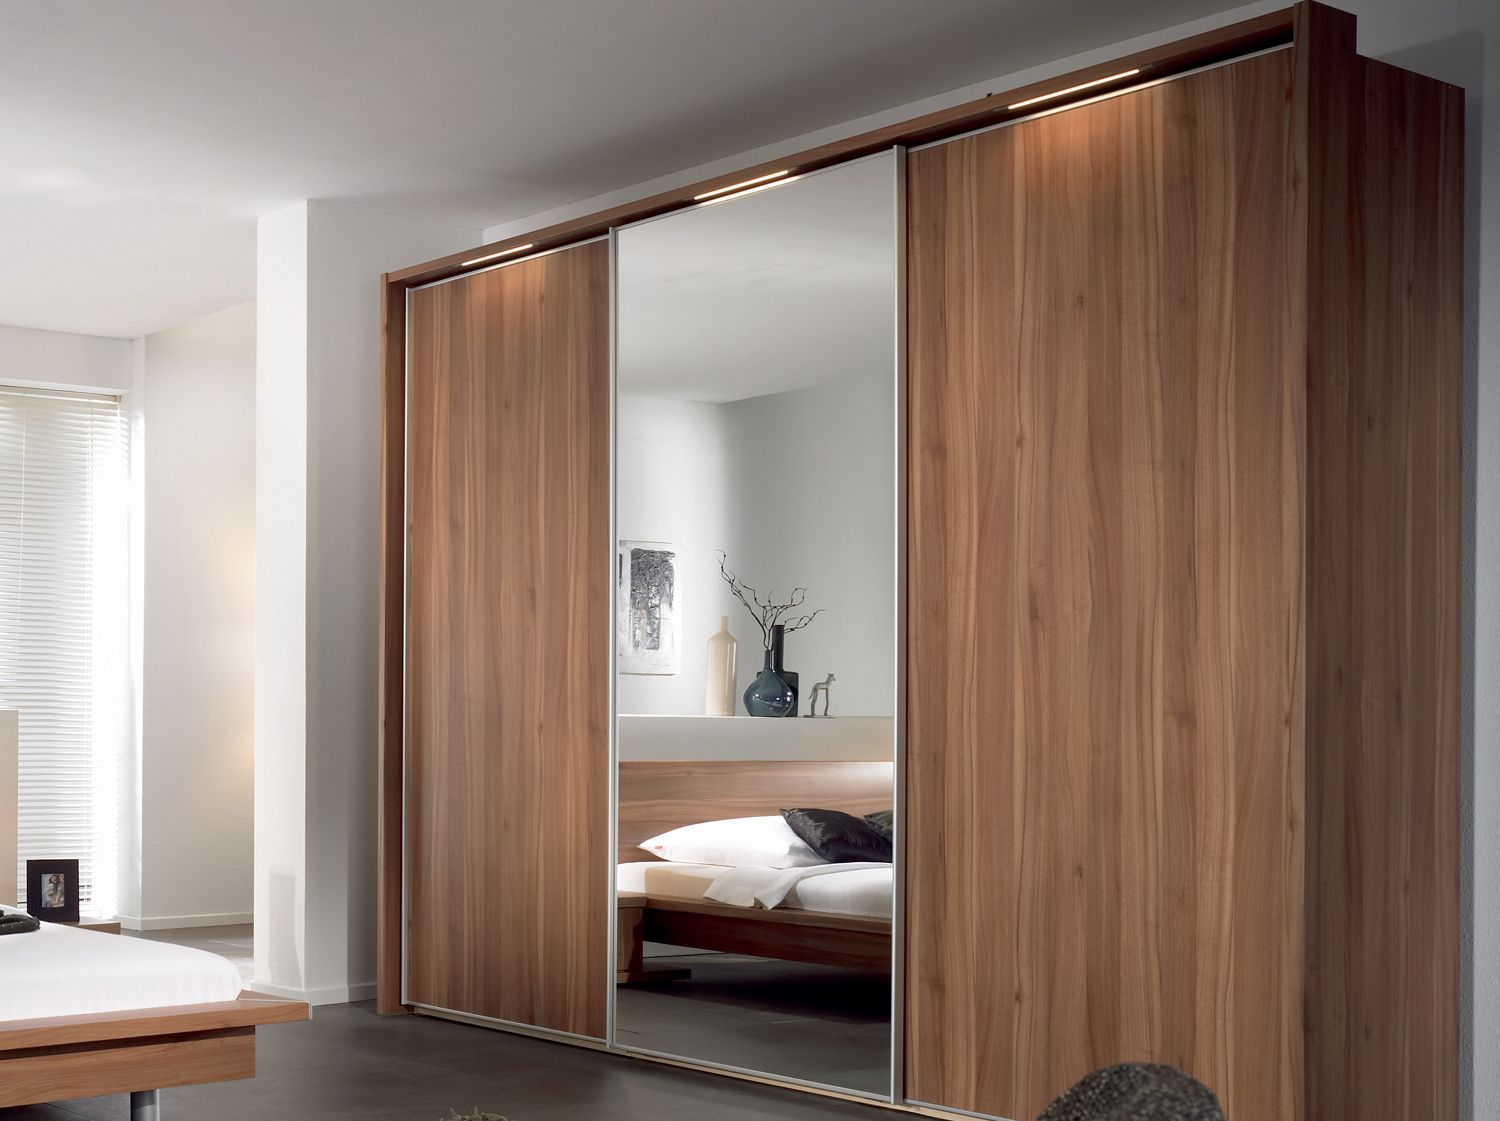 Cupboards Designs Furniture Sliding Wardrobe Designs With Mirror For